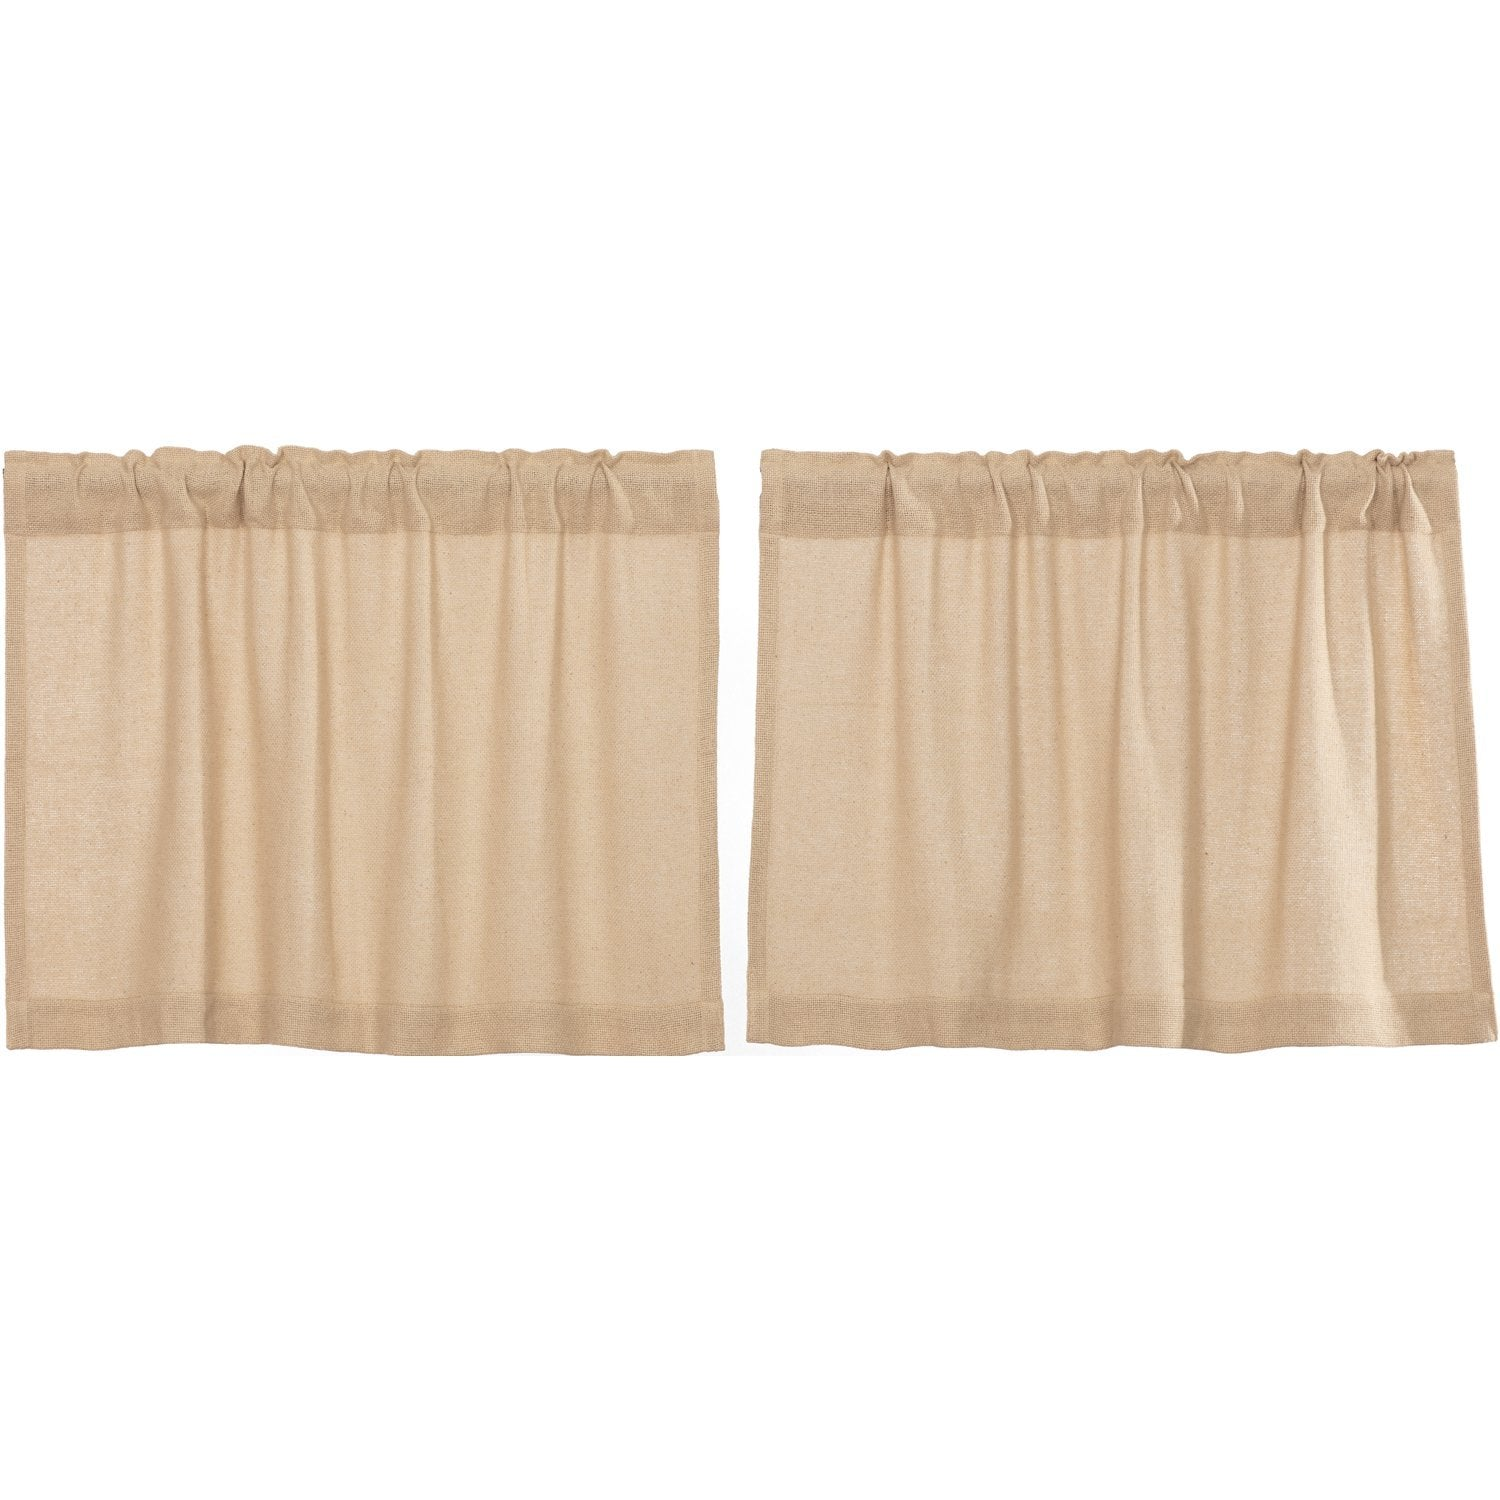 Burlap Vintage Tier Set of 2.